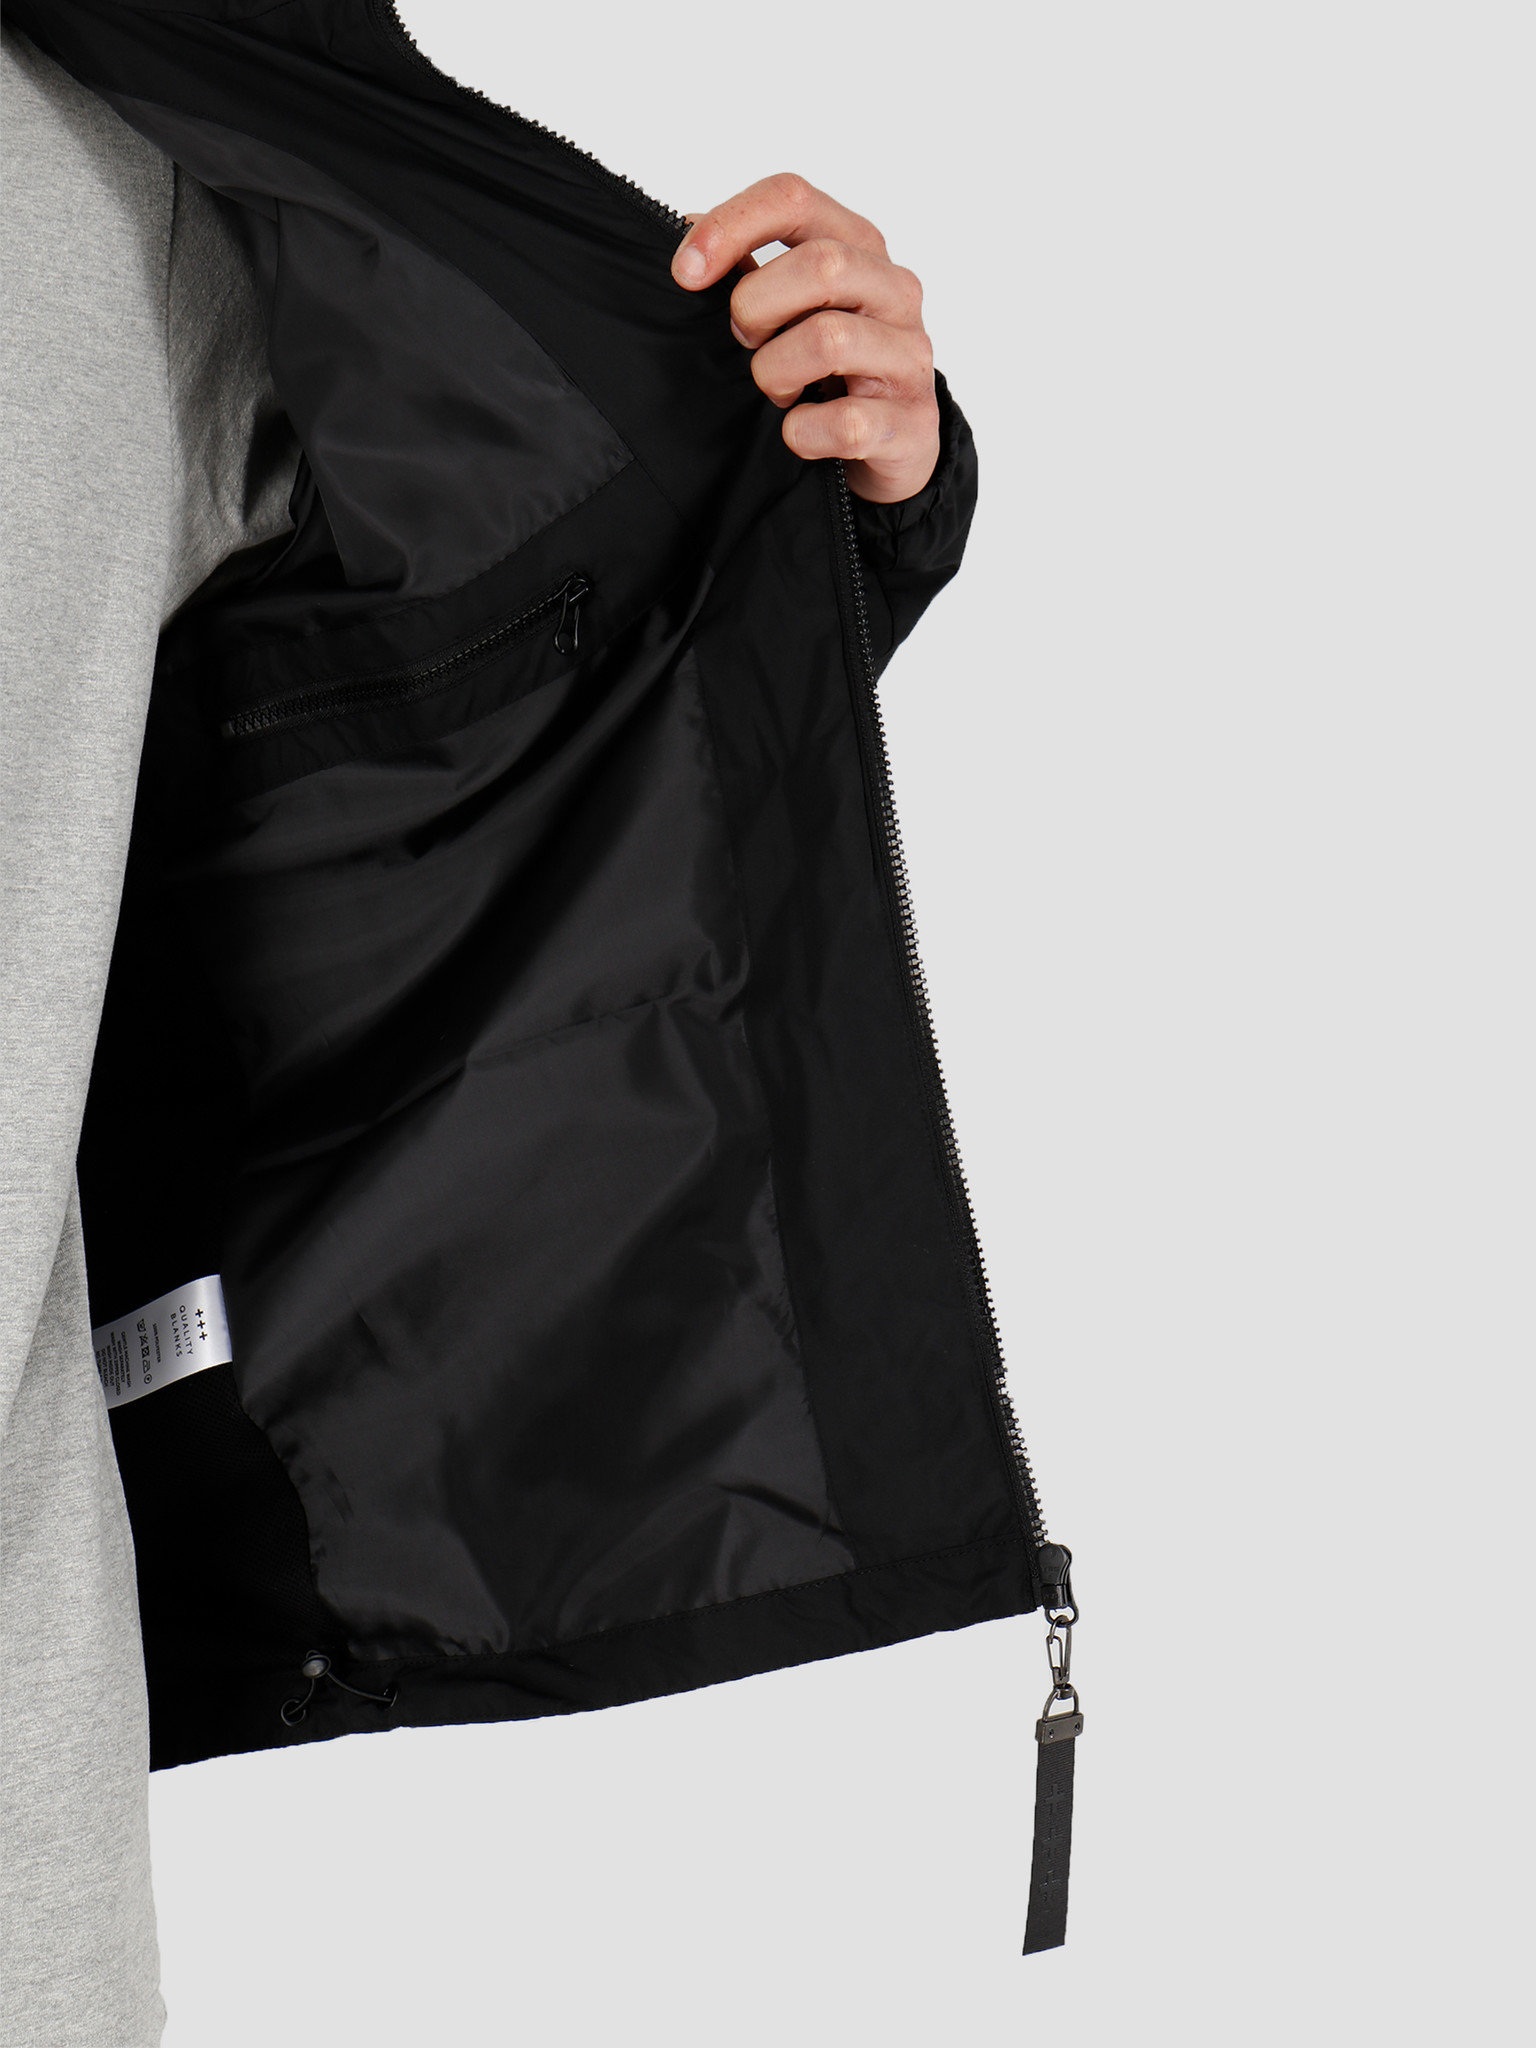 Quality Blanks Quality Blanks QB27 Windbreaker Jacket Black